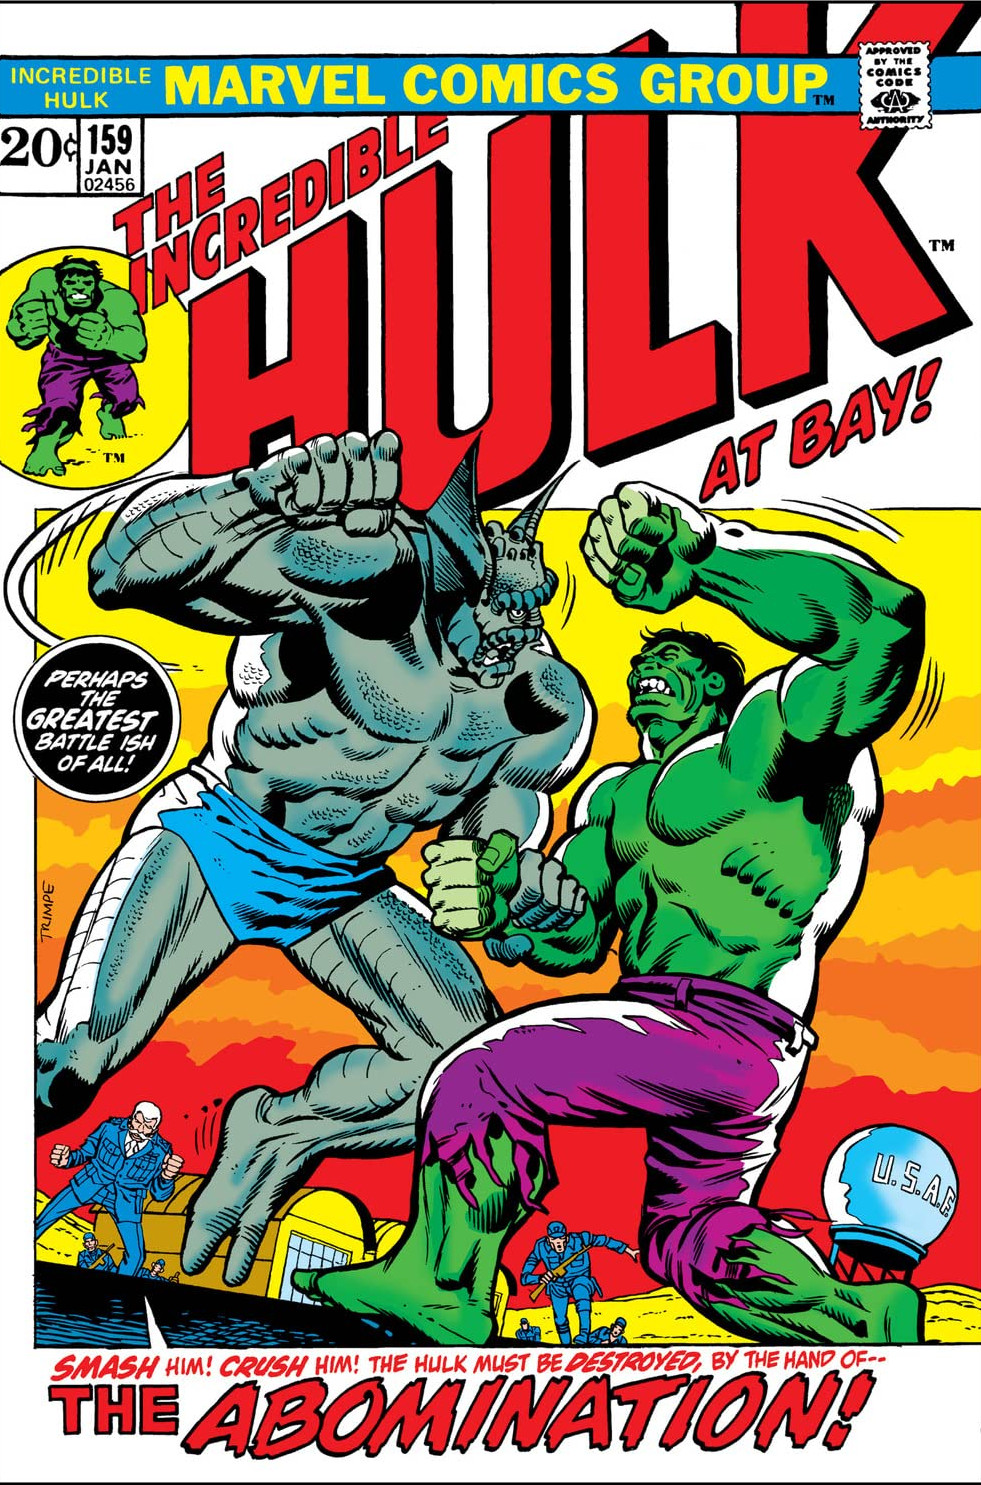 Incredible Hulk Vol 1 159